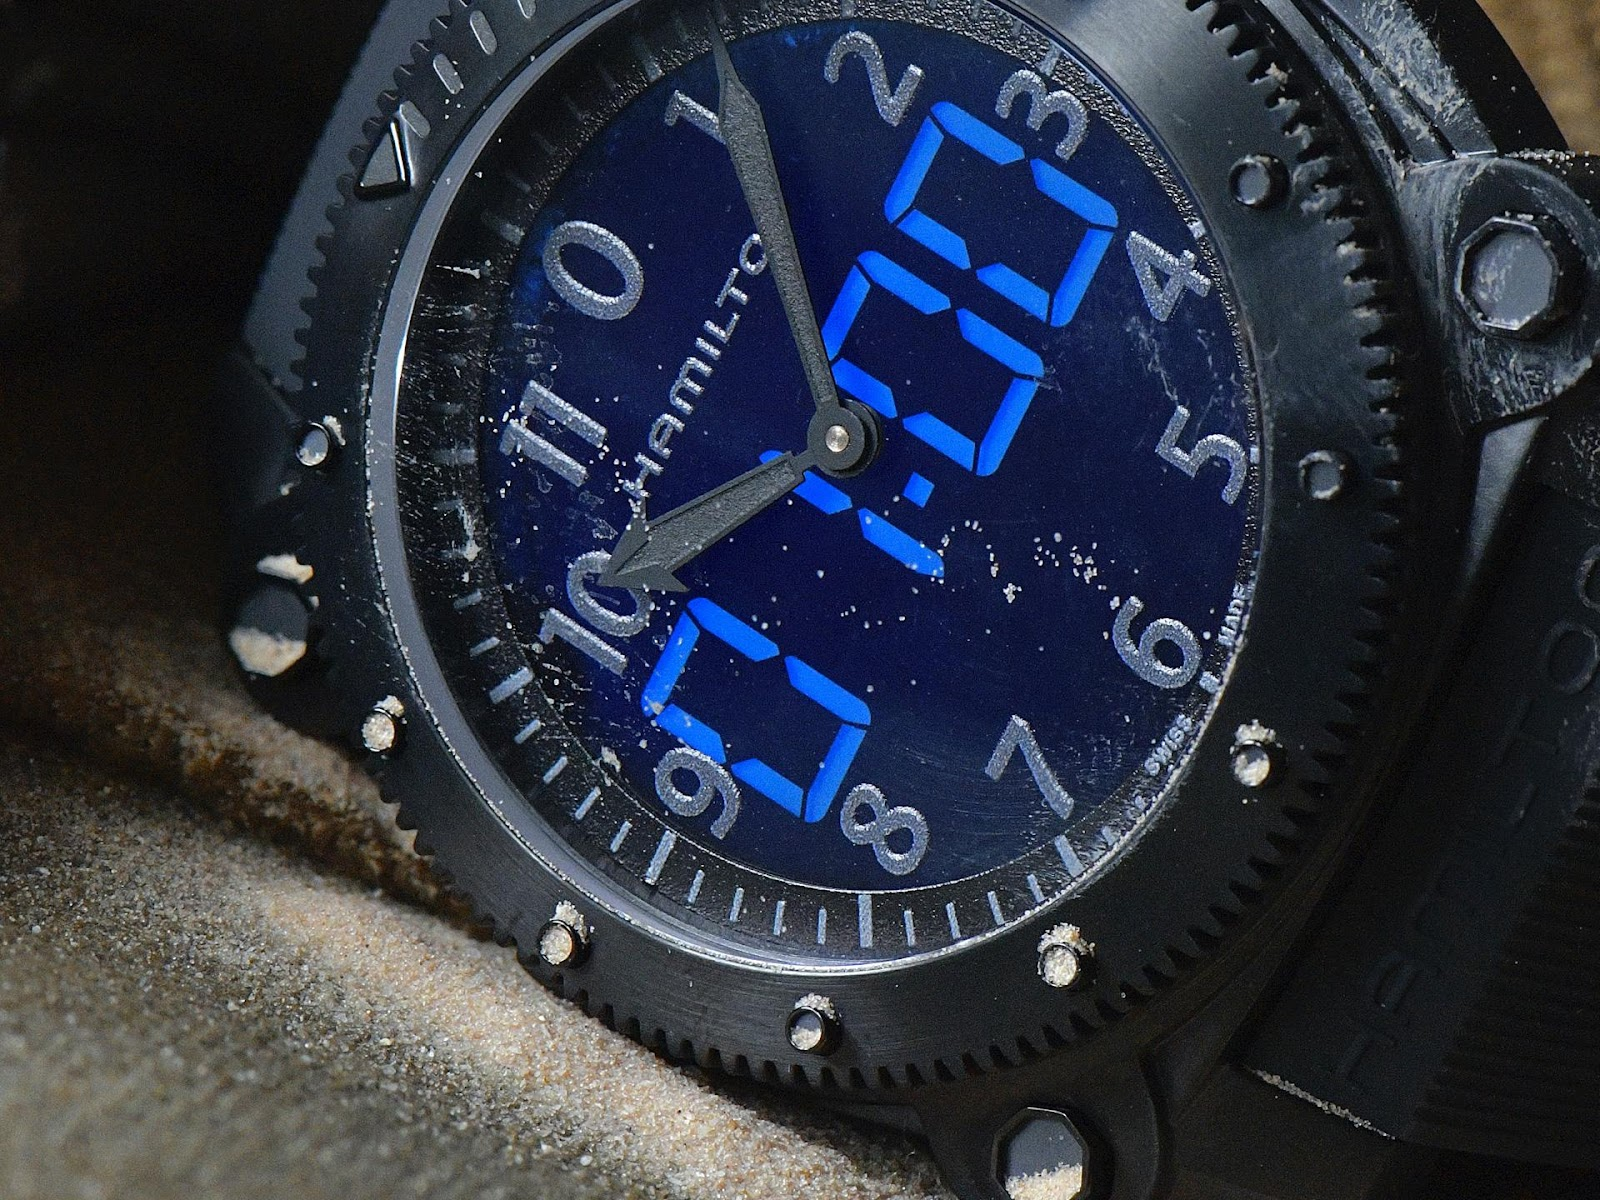 A picture containing watch, close  Description automatically generated